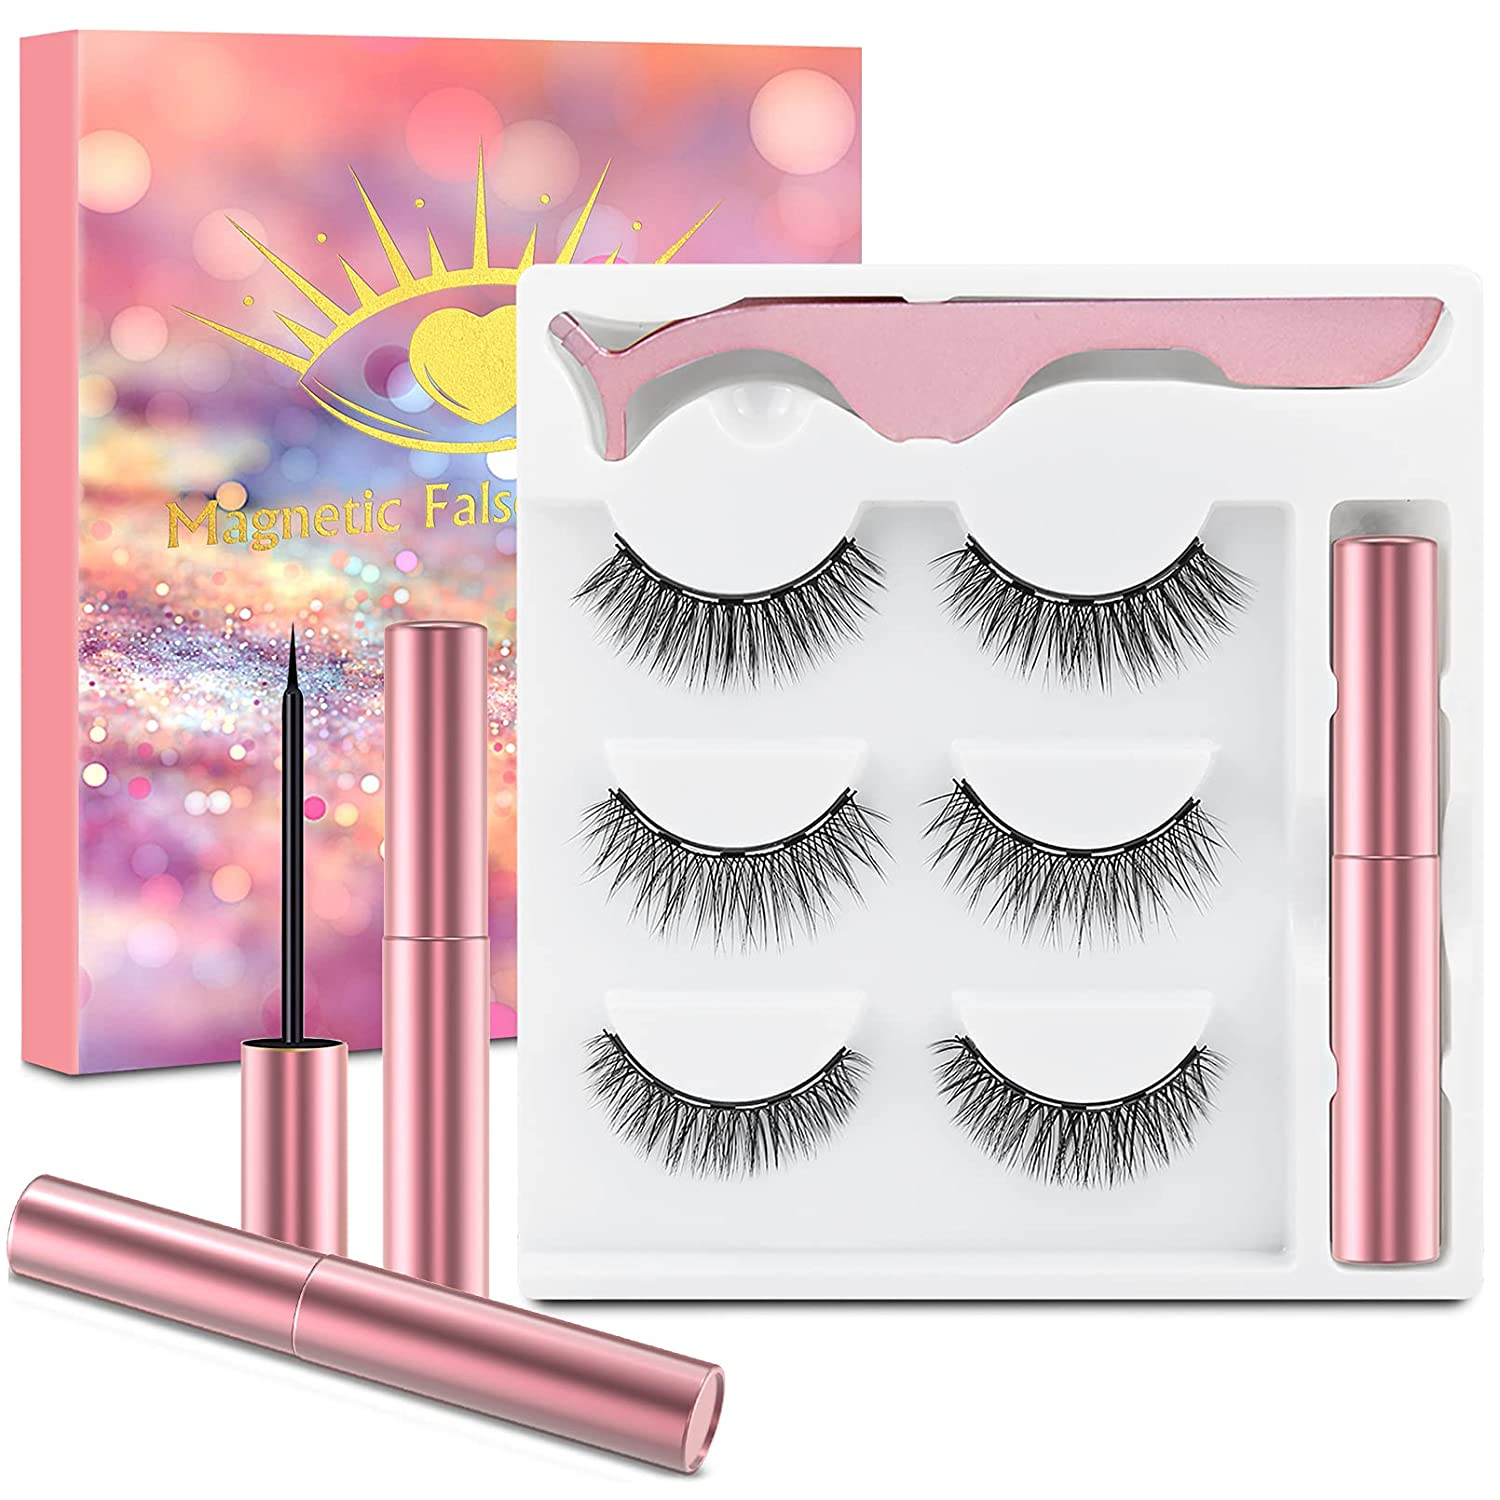 Magnetic Eyelashes Kit Eyeliner 3D 3 False Animer and price revision Pairs Fa Special Campaign